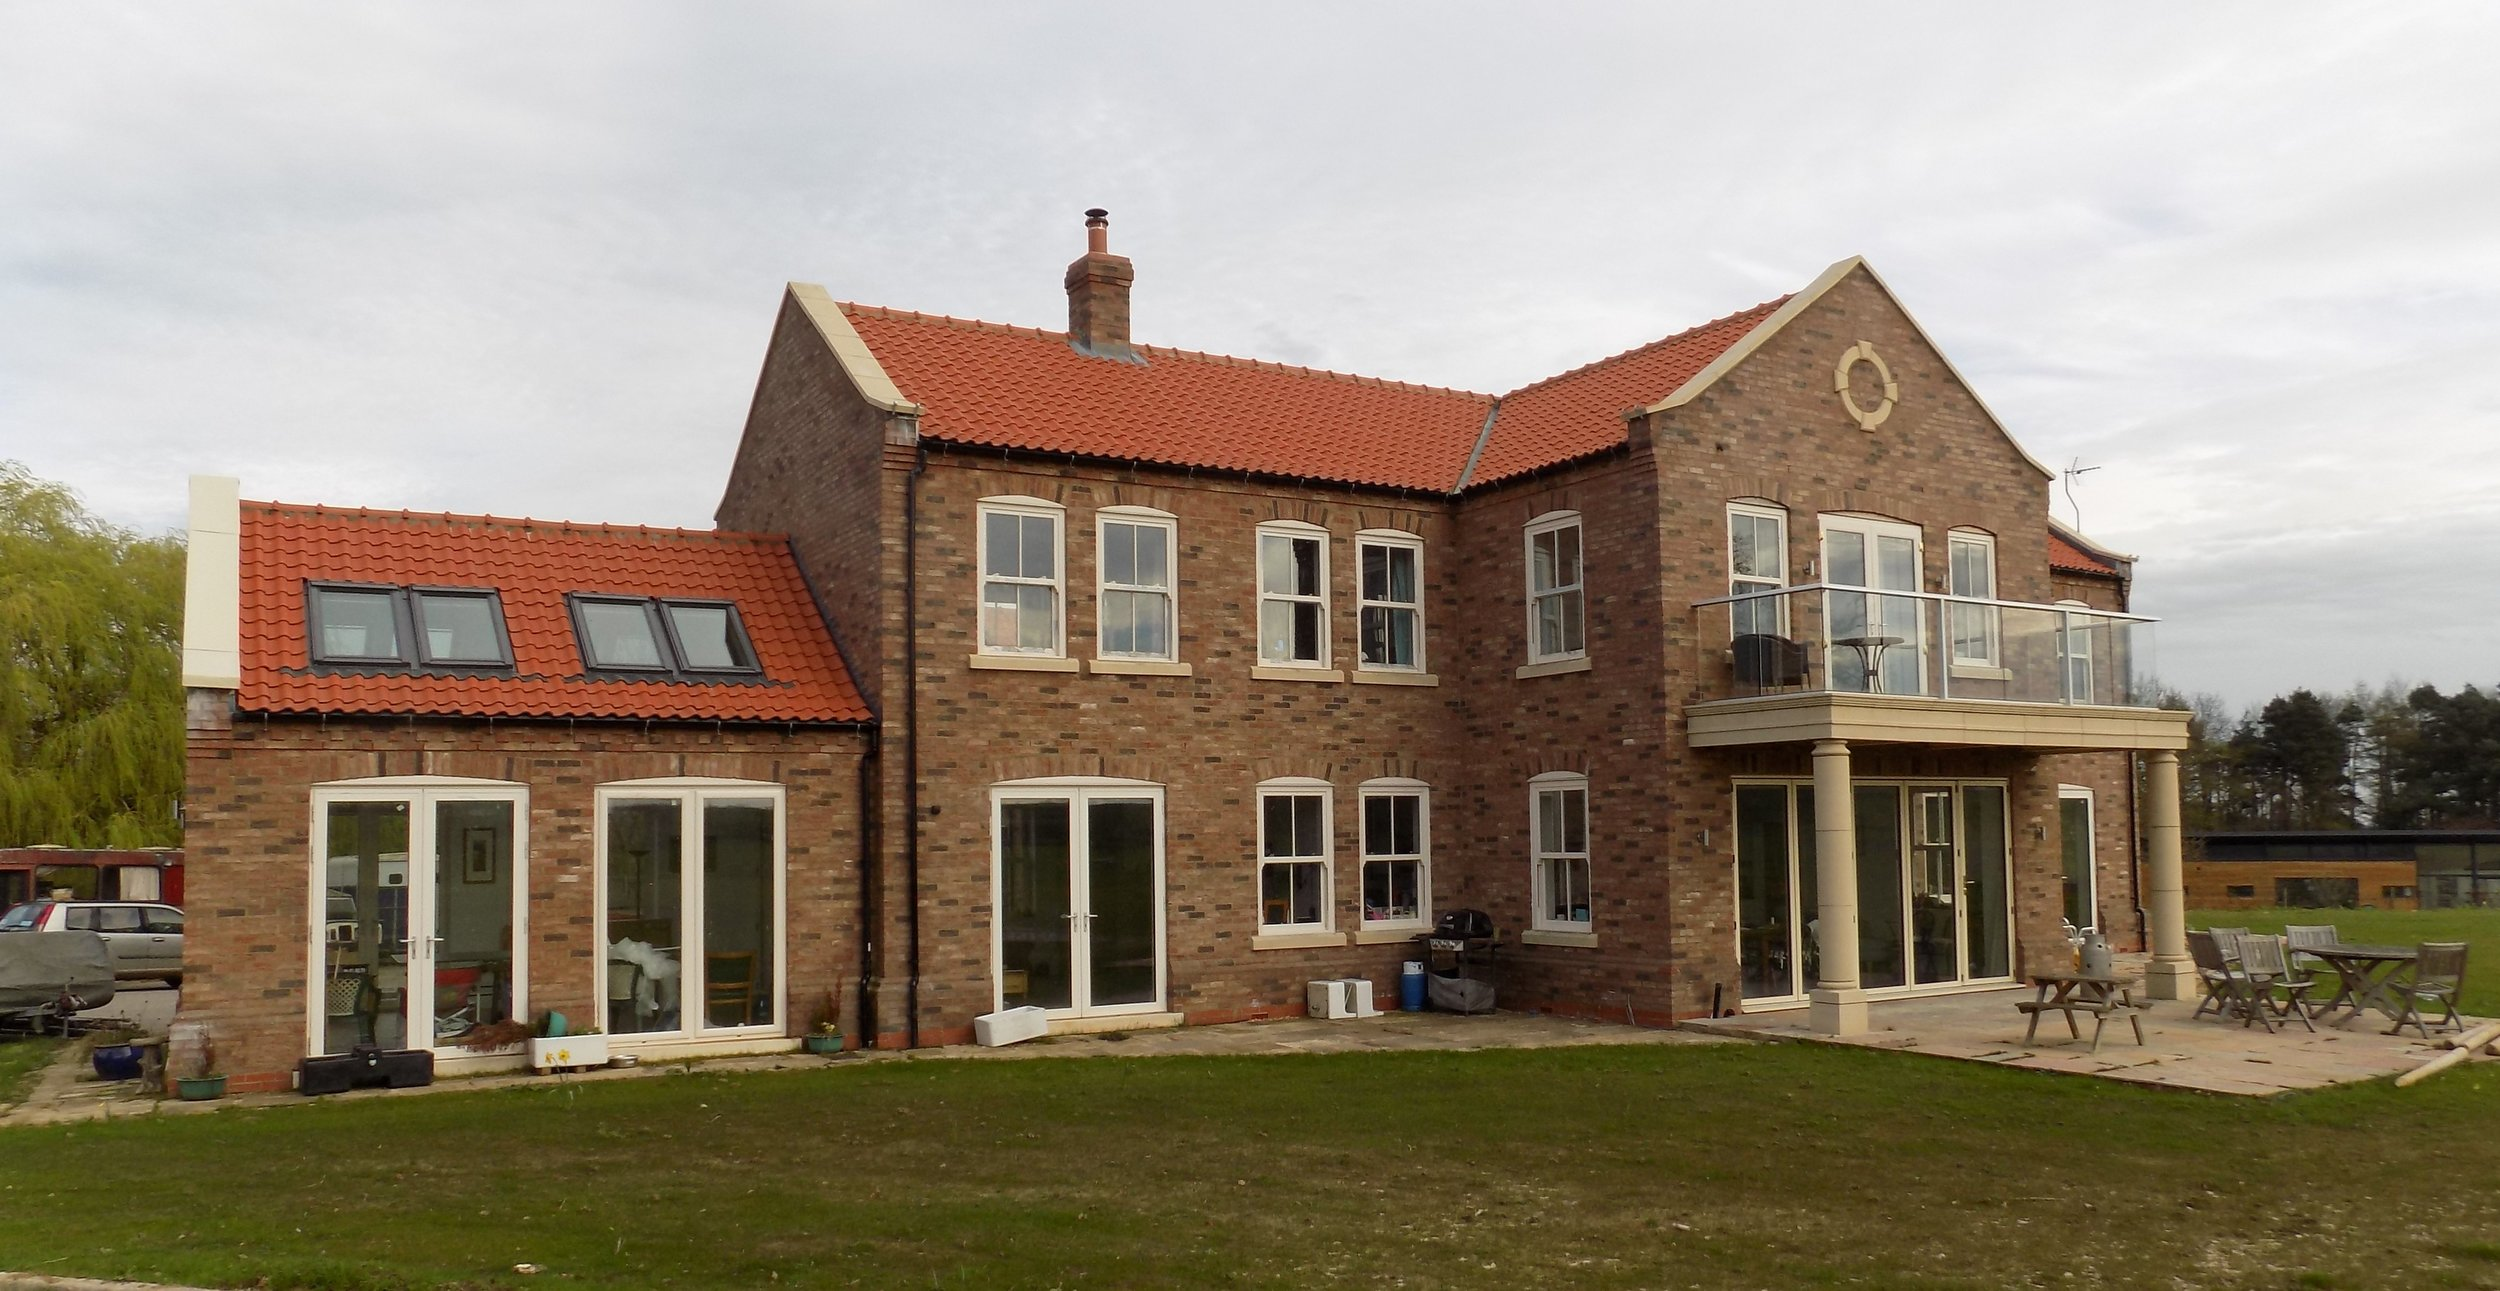 Etton House - Beverley Architects - Samuel Kendall Associates